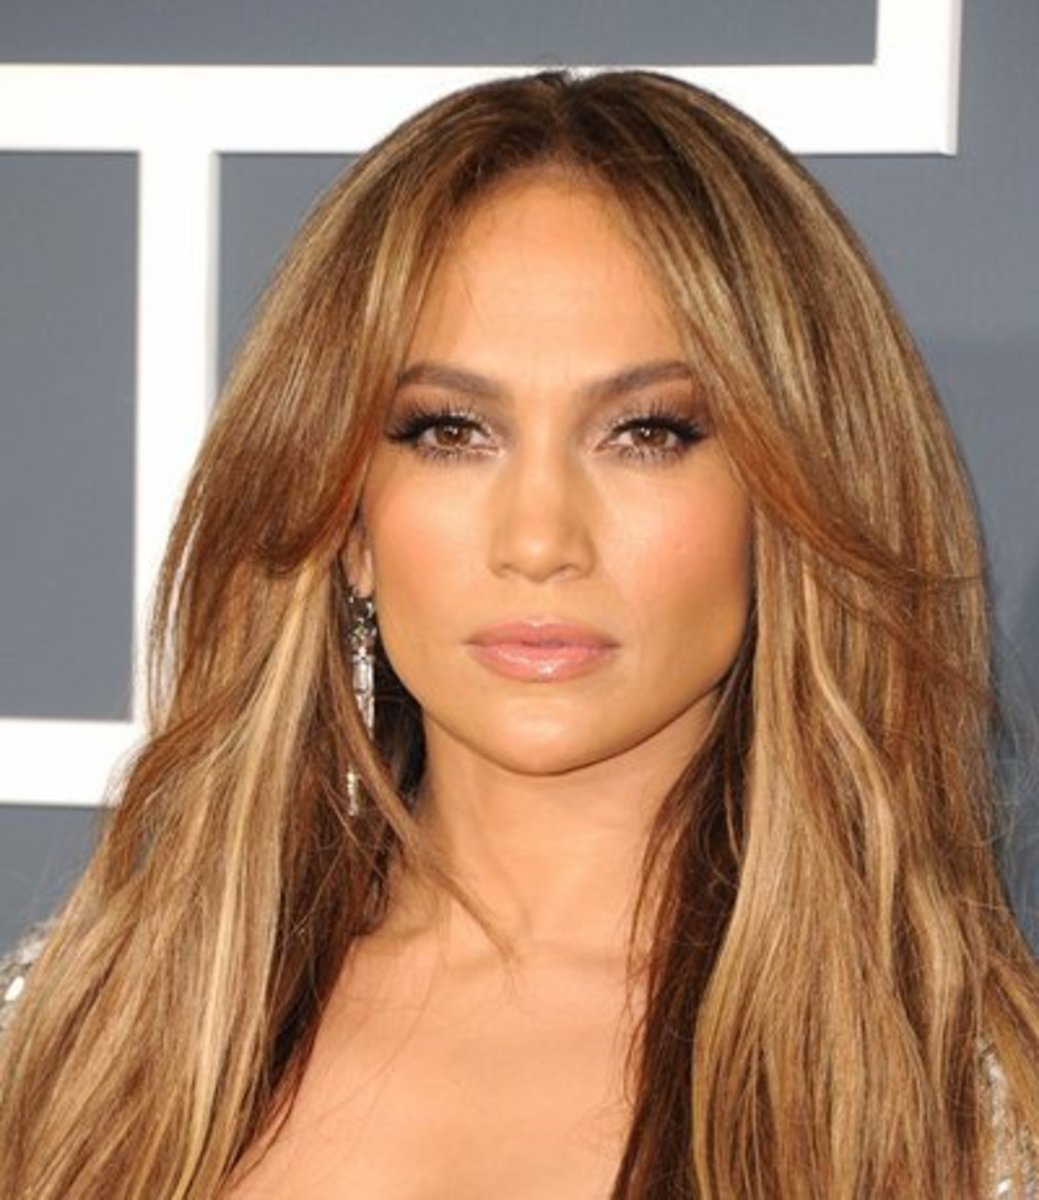 J. Lo has famously flawless skin. Find out how to apply makeup to replicate her look.